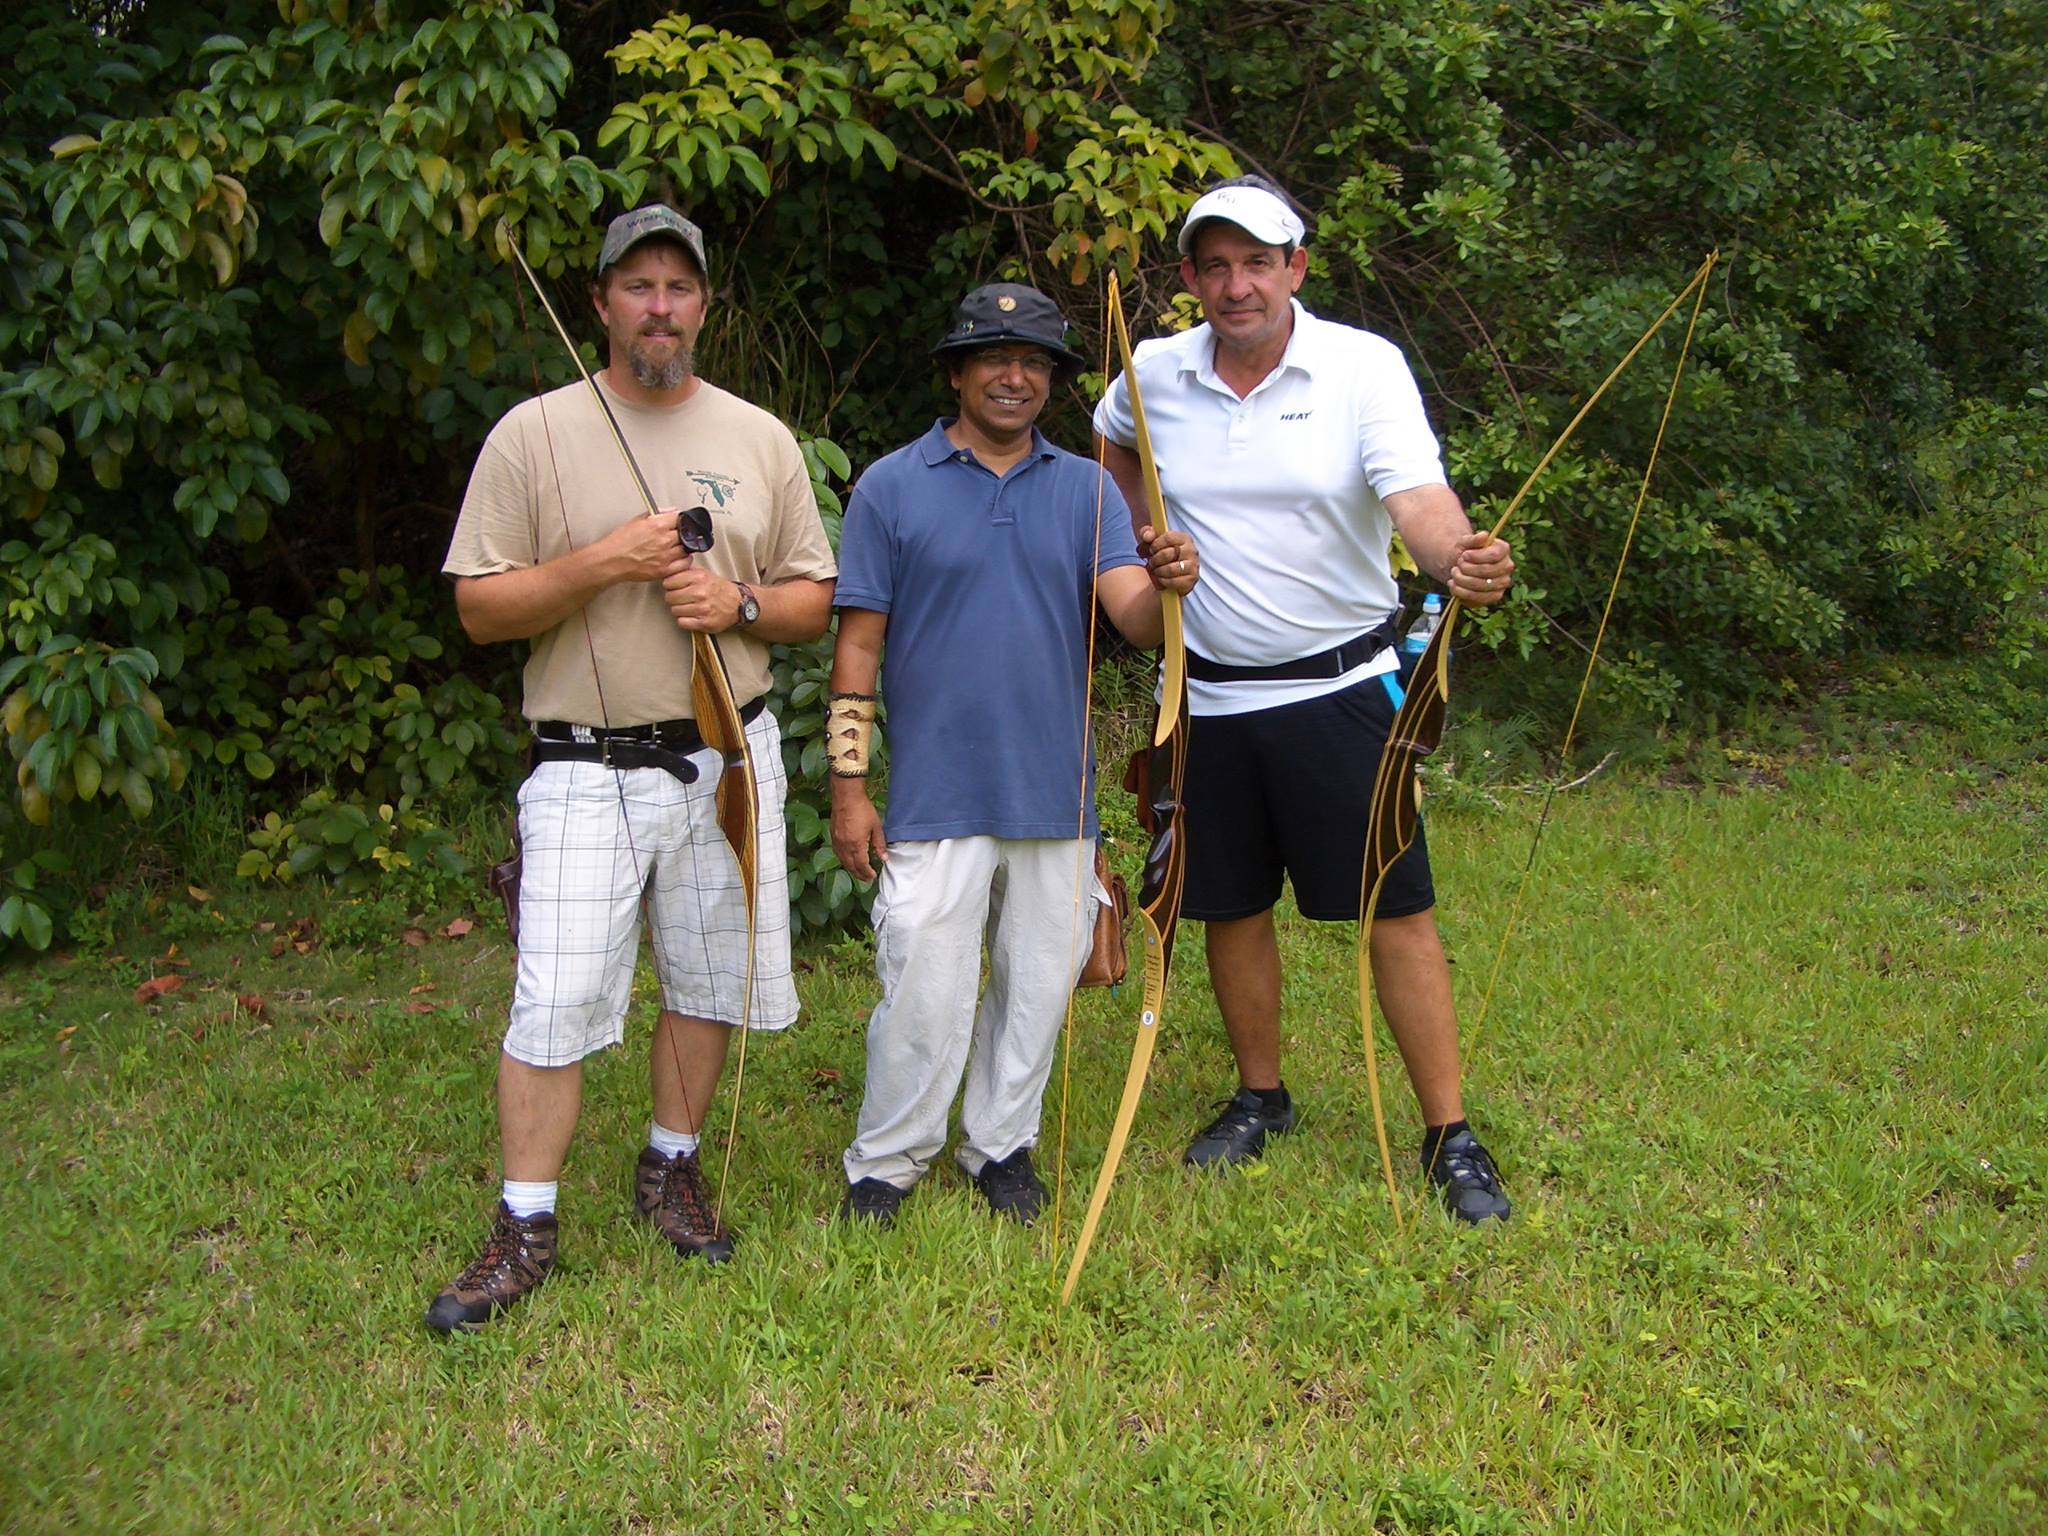 Everglades Archers - Homestead Accessibility